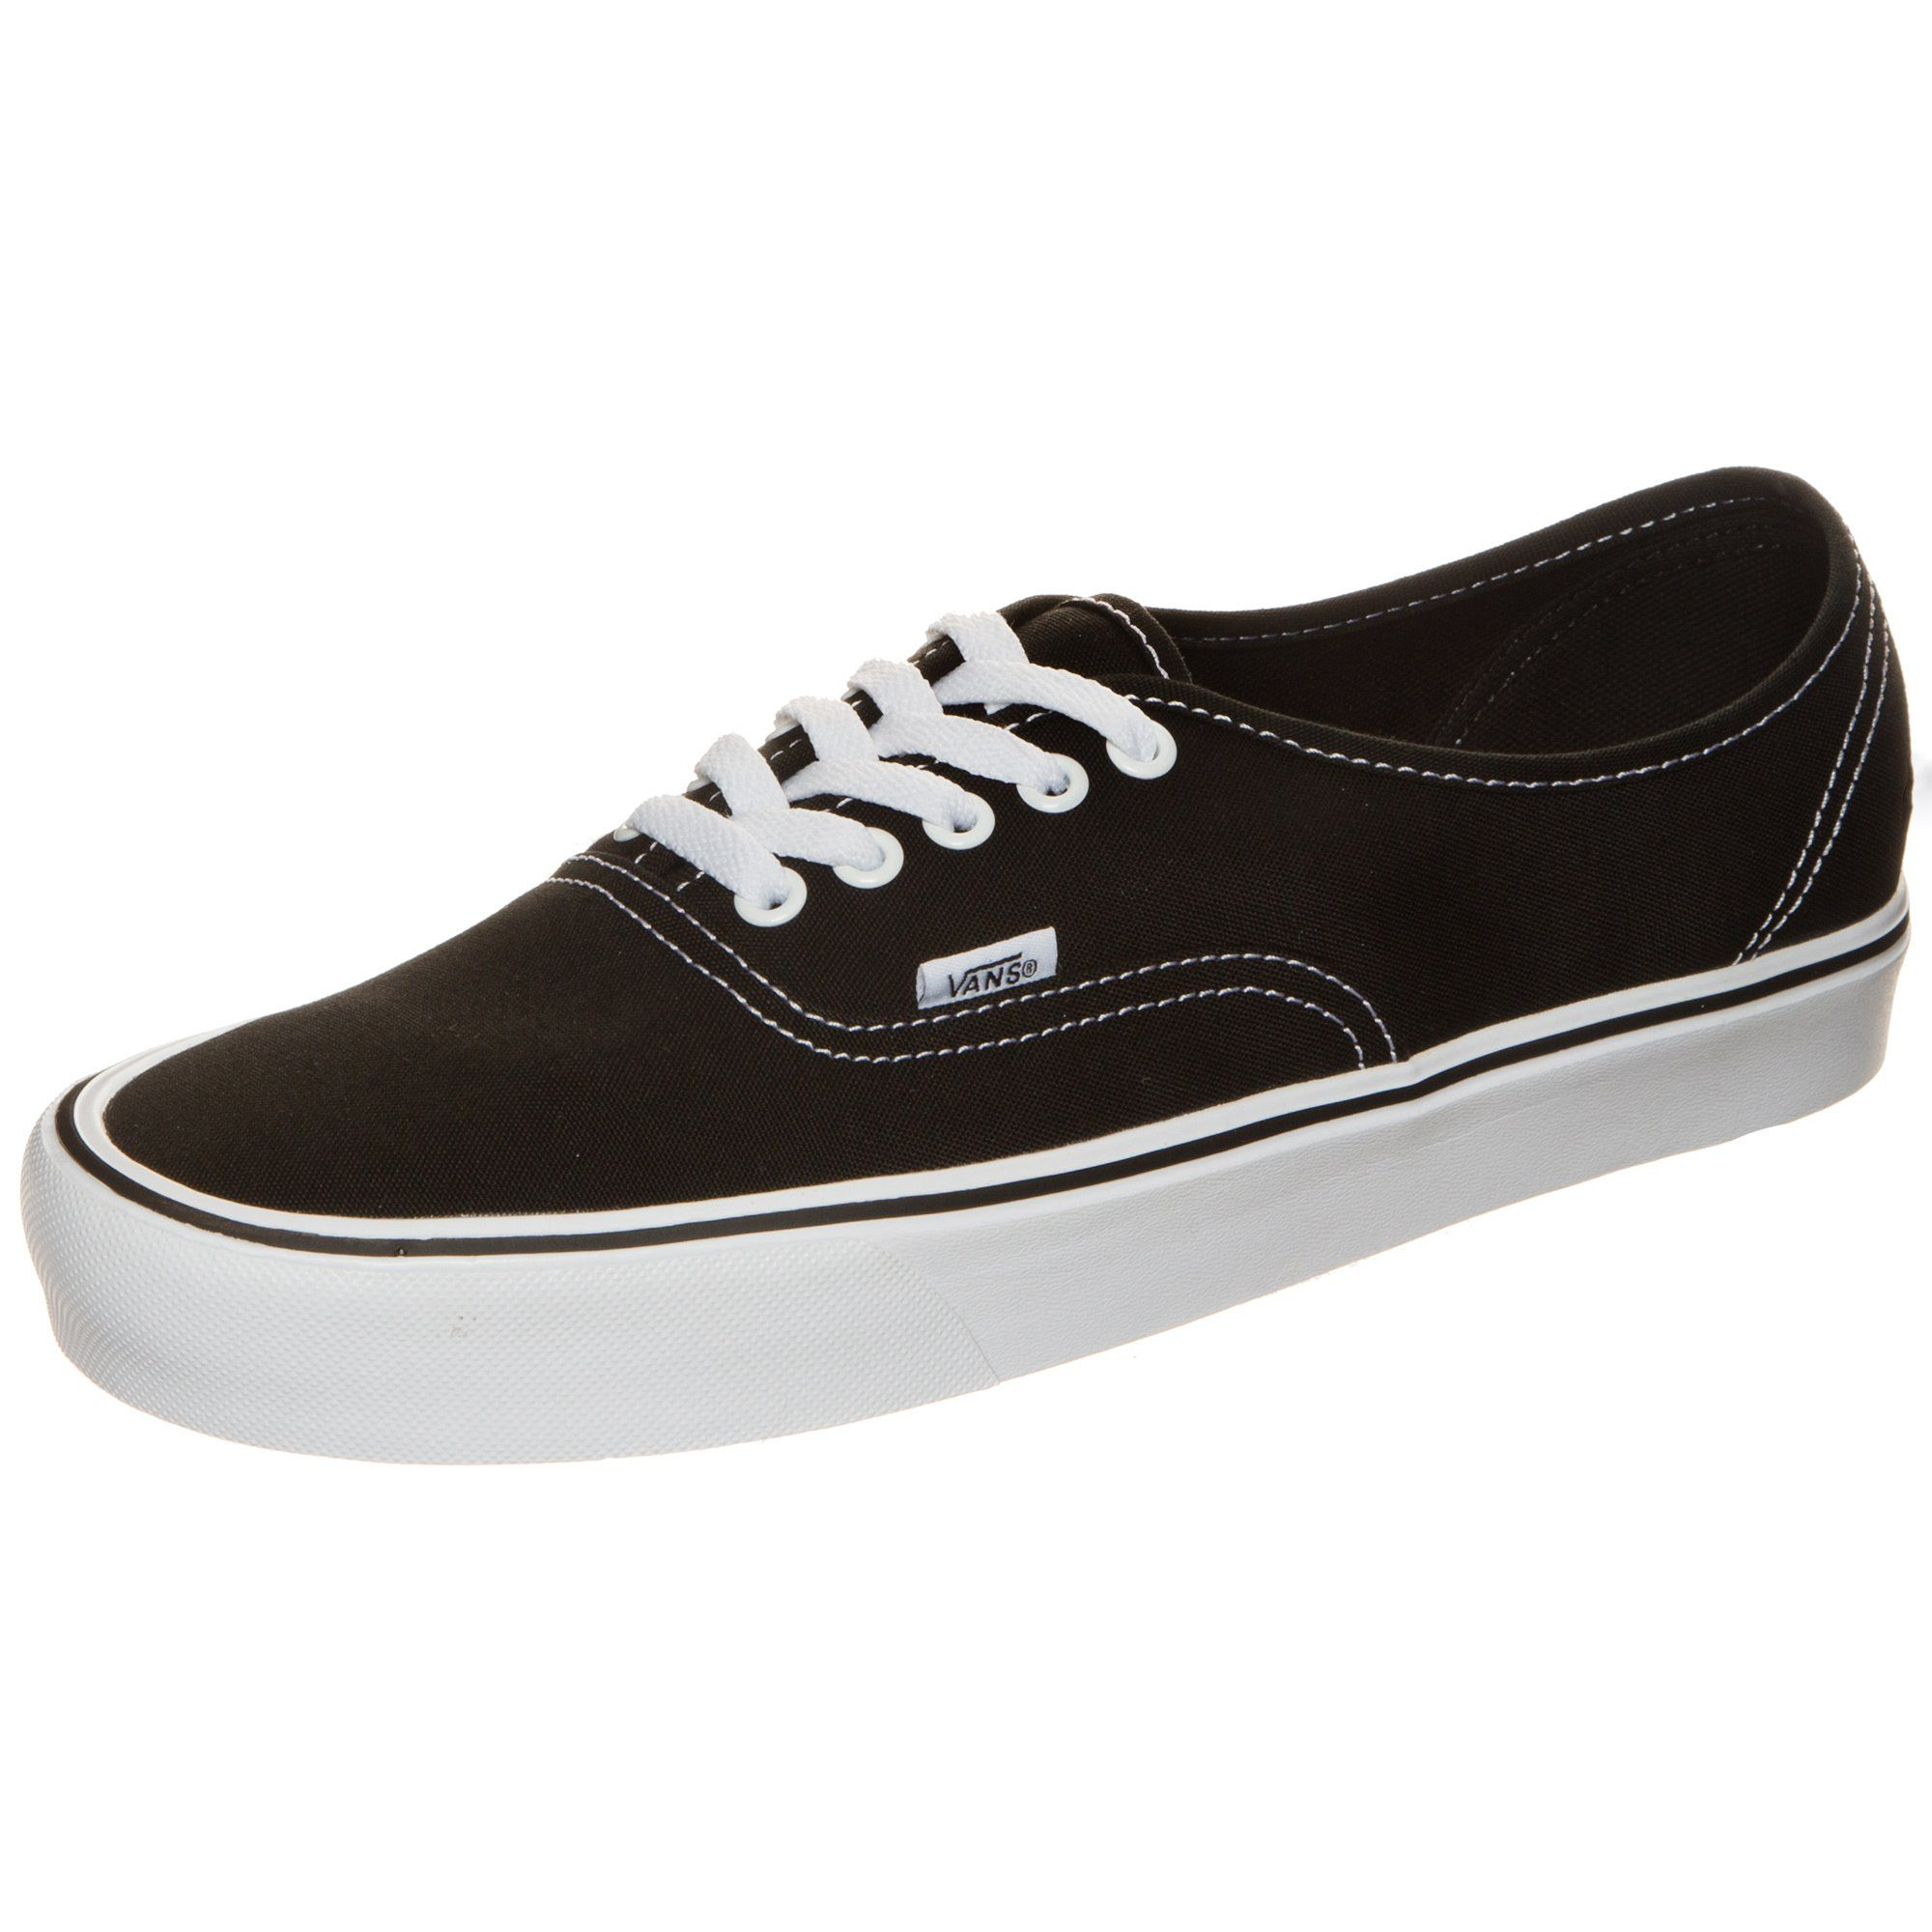 Vans »Authentic Lite Canvas« Sneaker online kaufen | OTTO